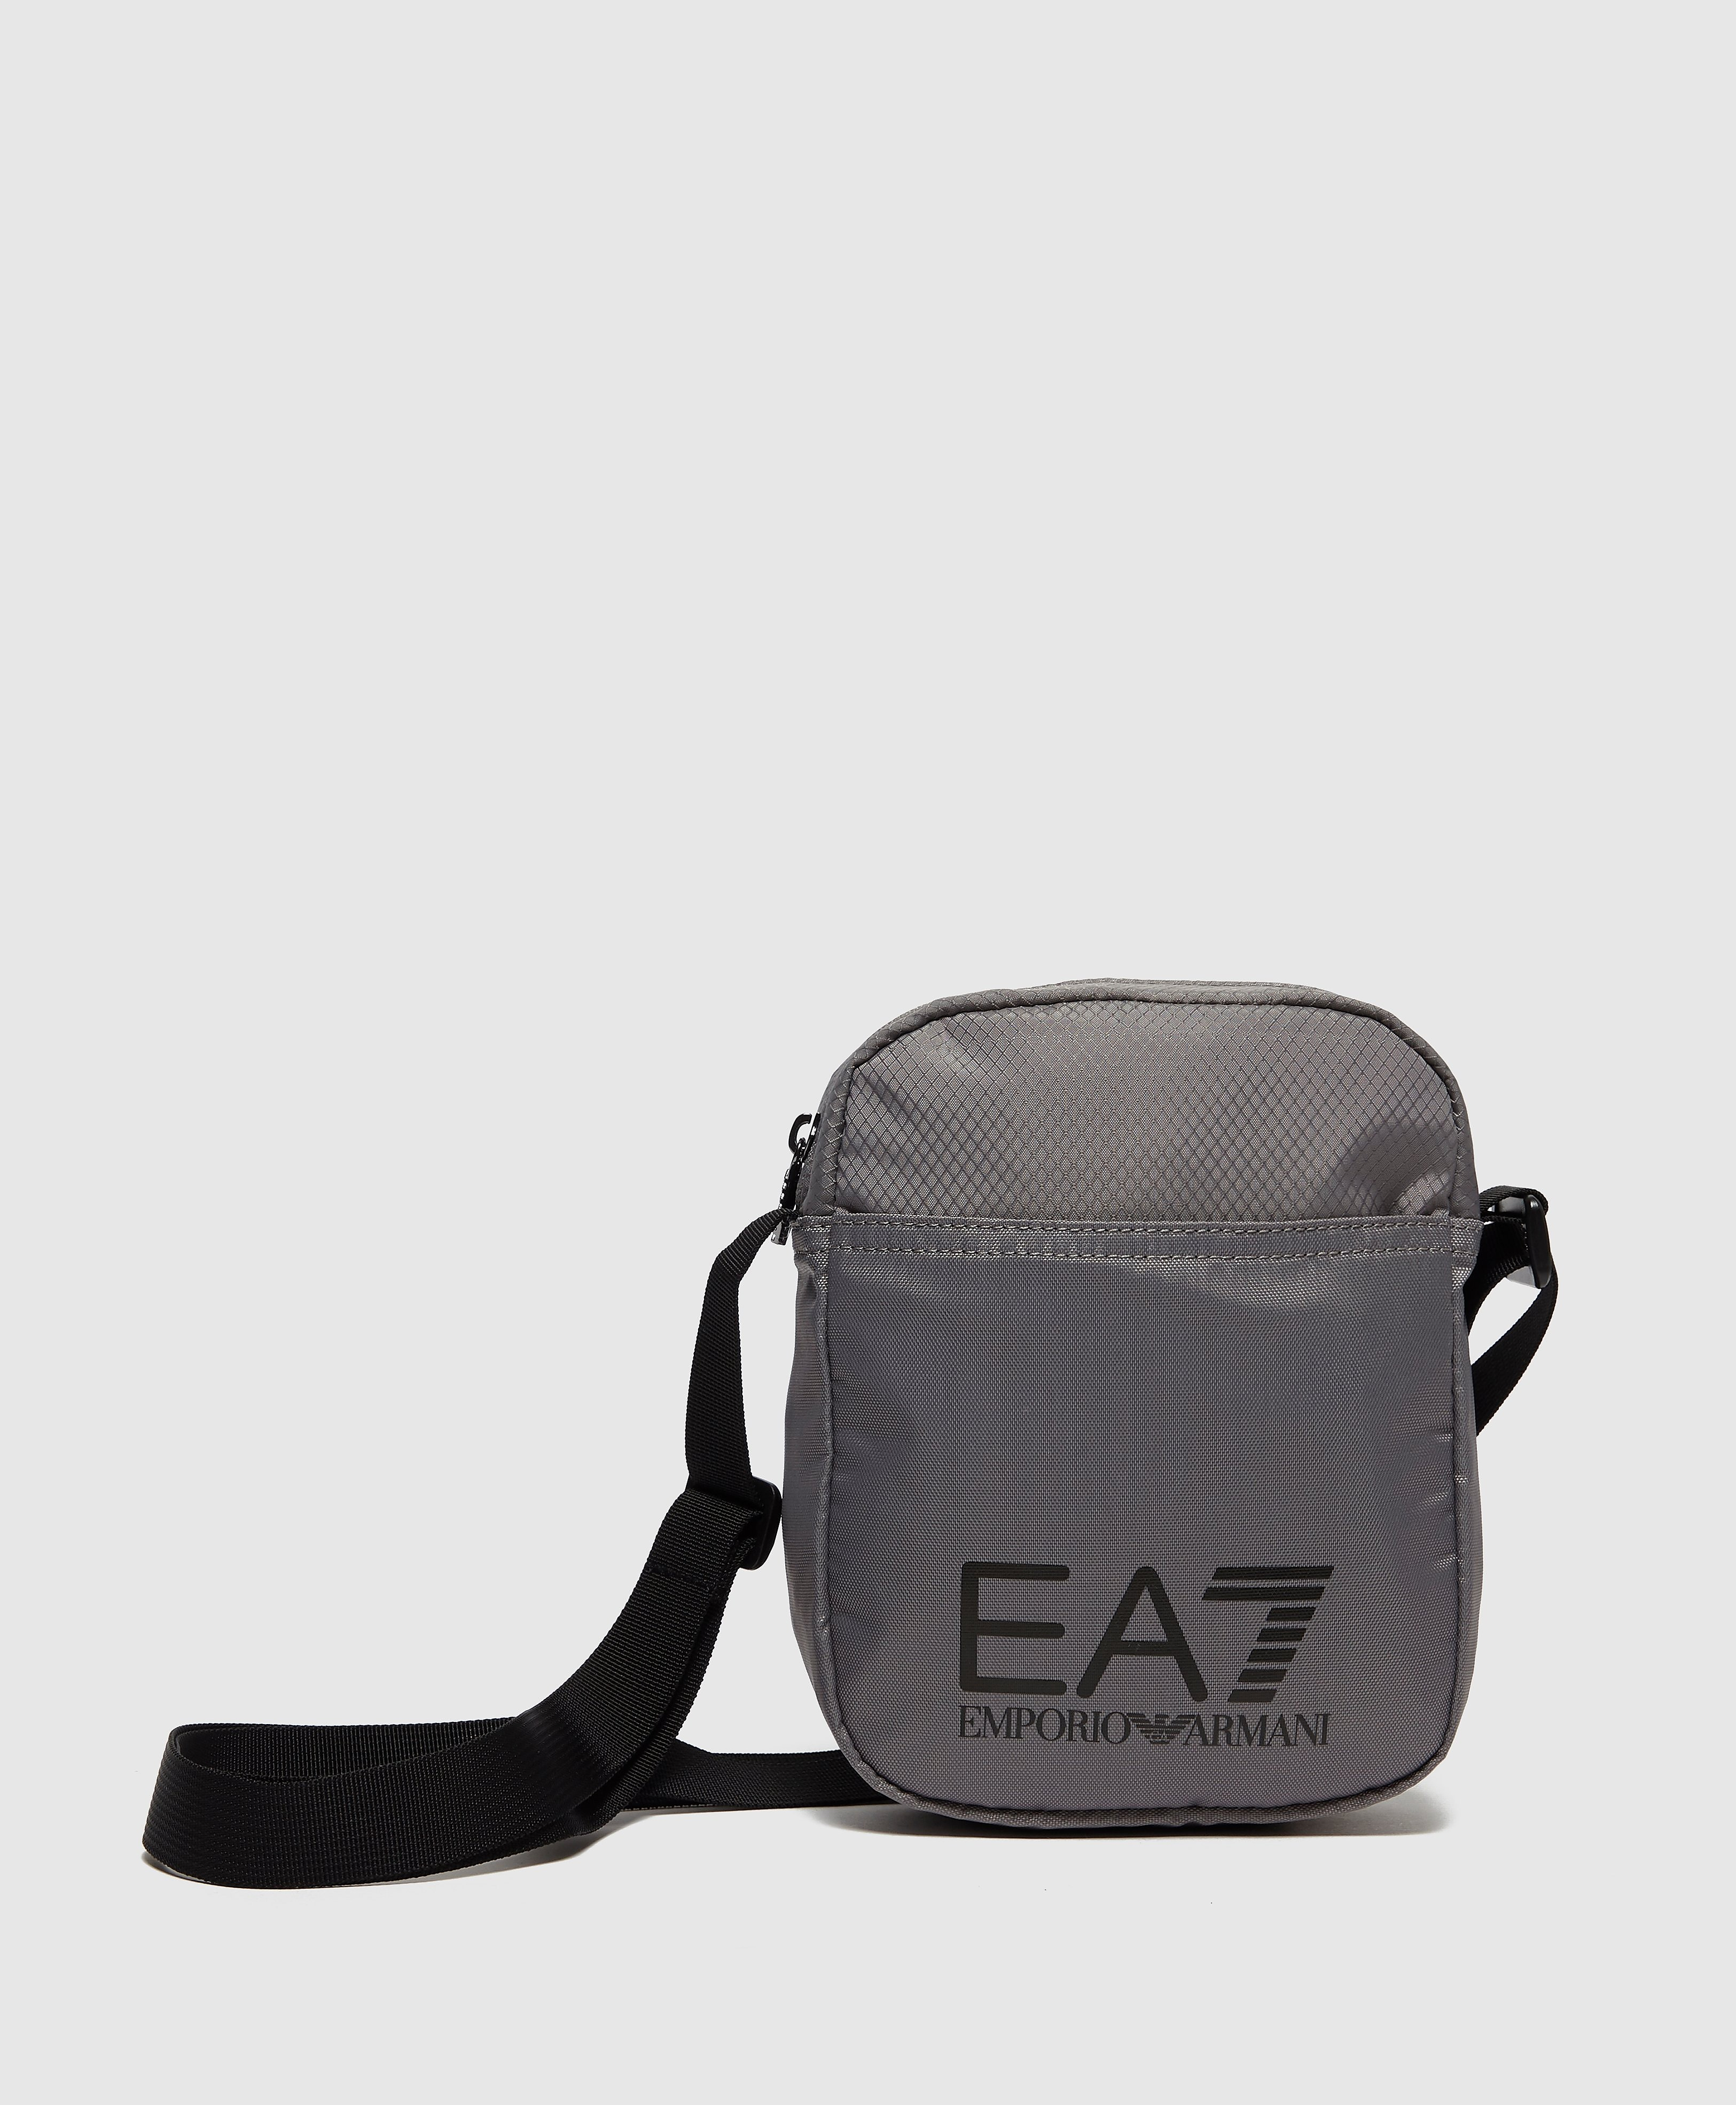 Emporio Armani EA7 Train Logo Small Pouch Bag